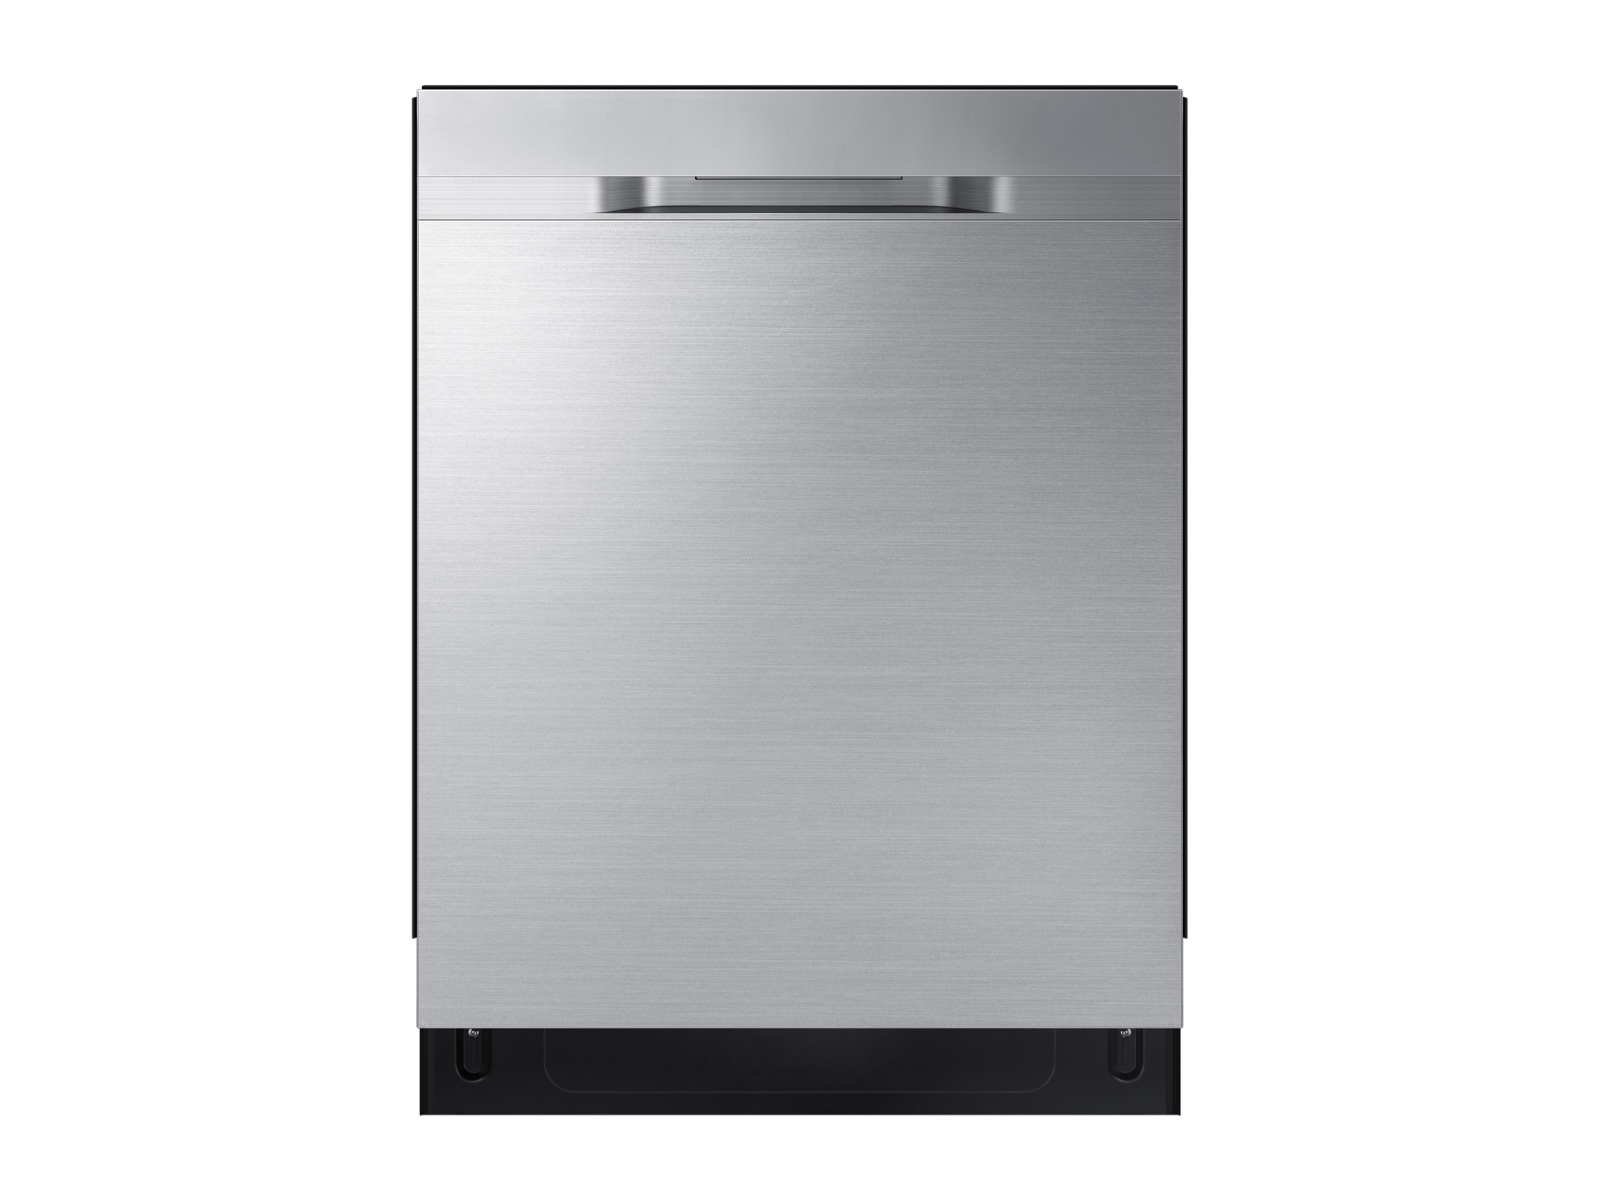 Most Appliances Have The Diagrams Hidden Somewhere Inside The Cabinet